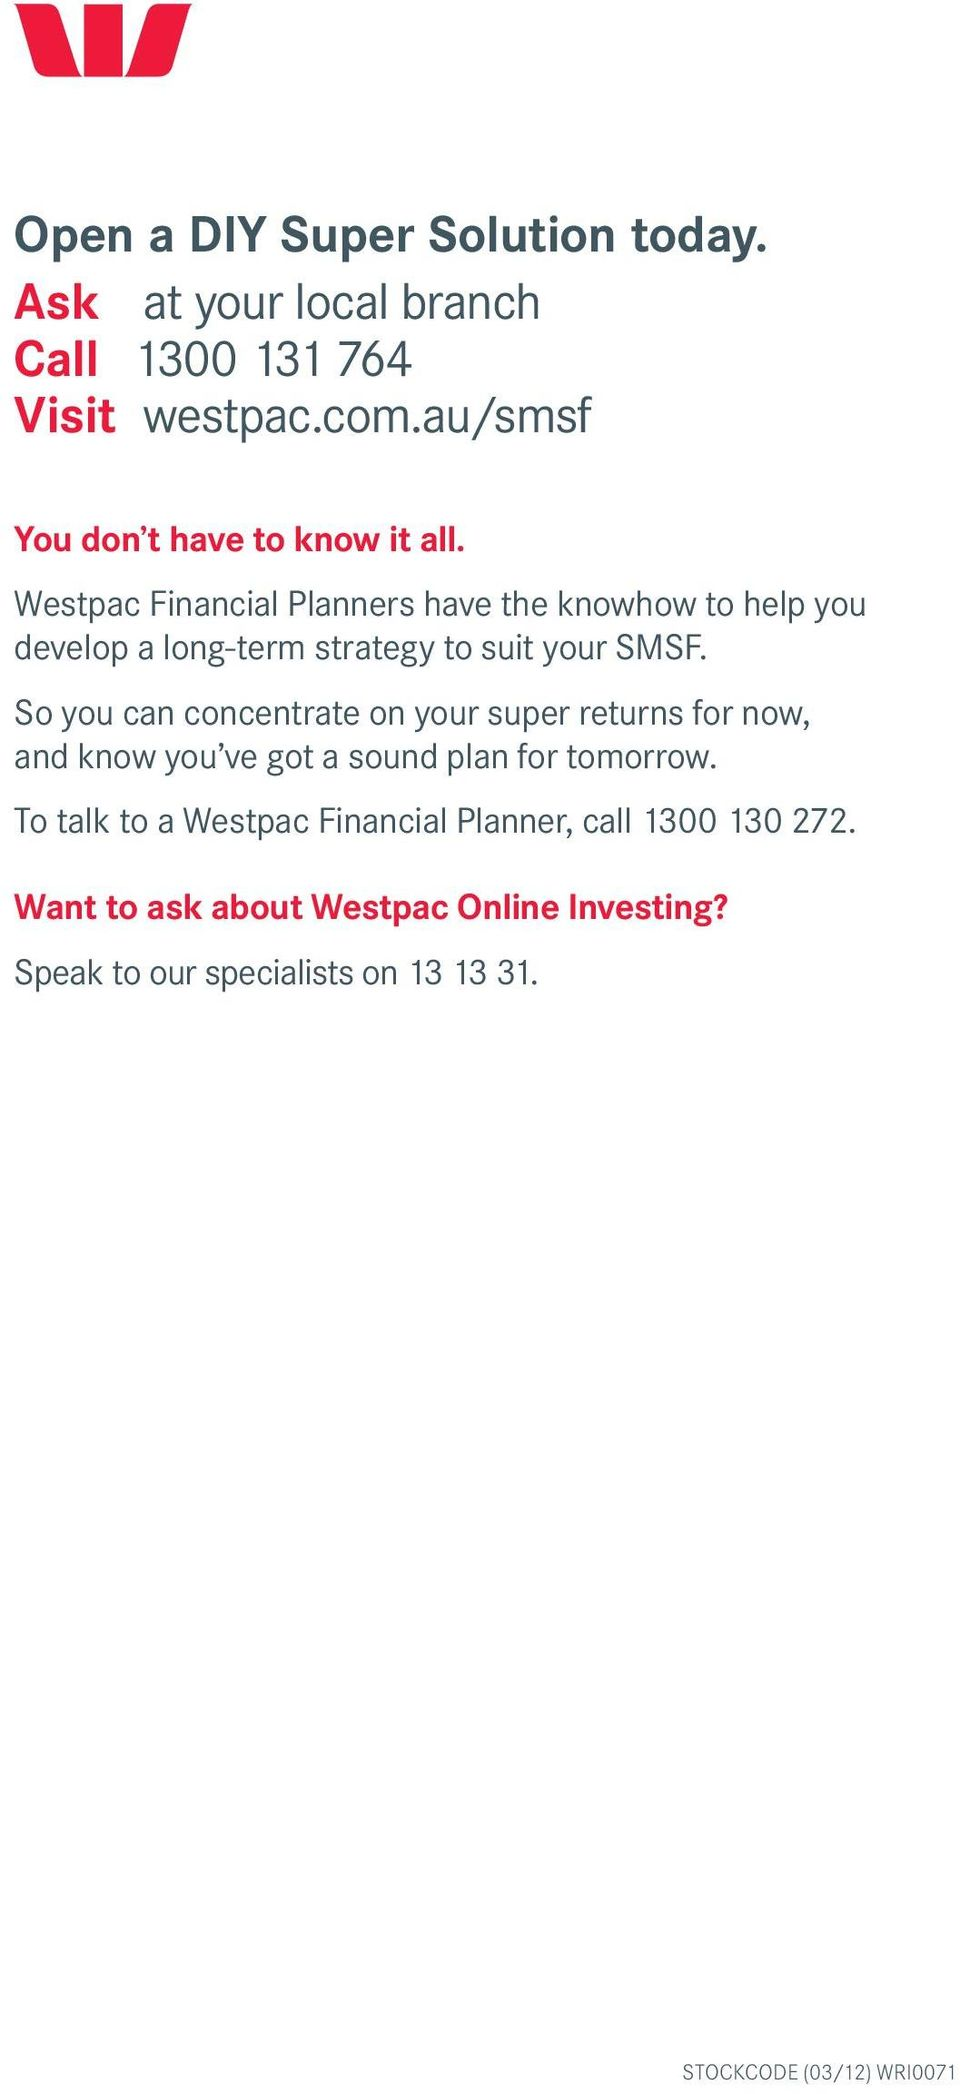 Westpac Financial Planners have the knowhow to help you develop a long-term strategy to suit your SMSF.